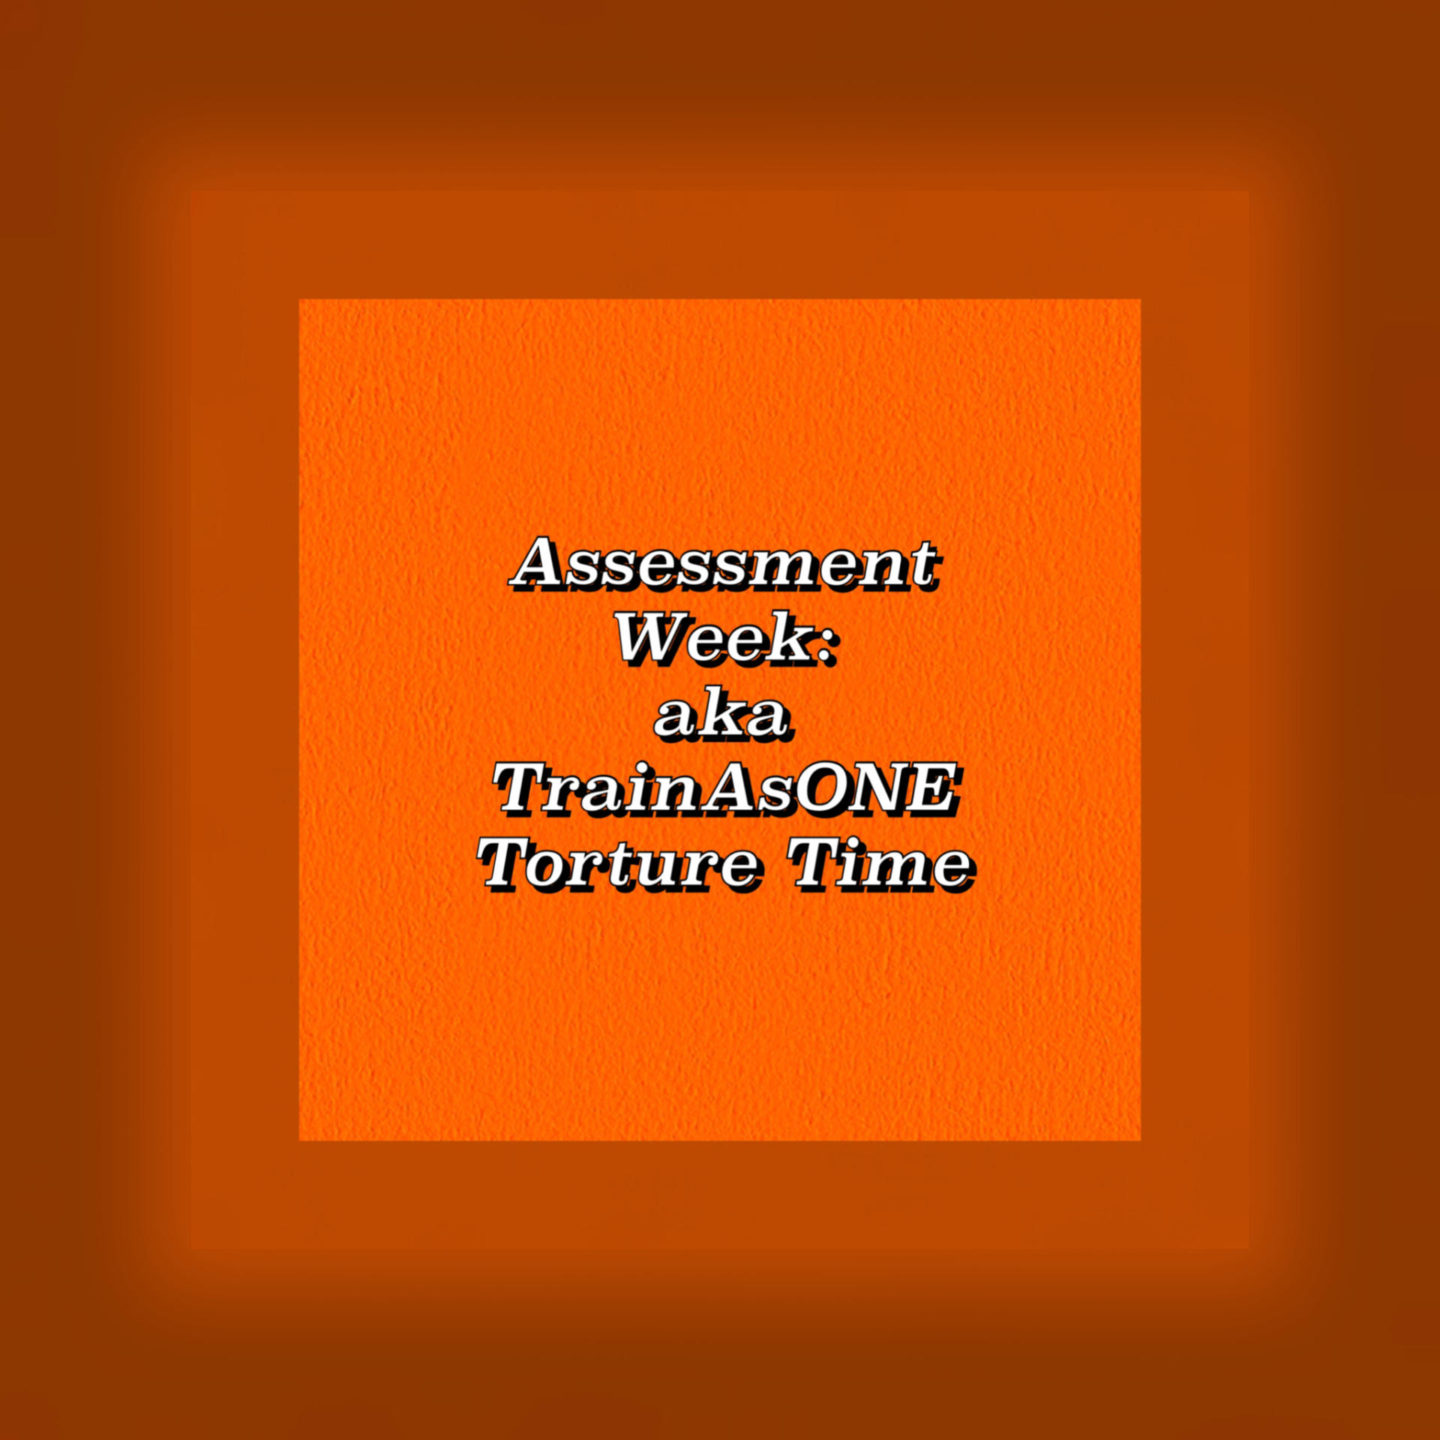 Image wording - Assessment Week: aka TrainAsONE Torture Time